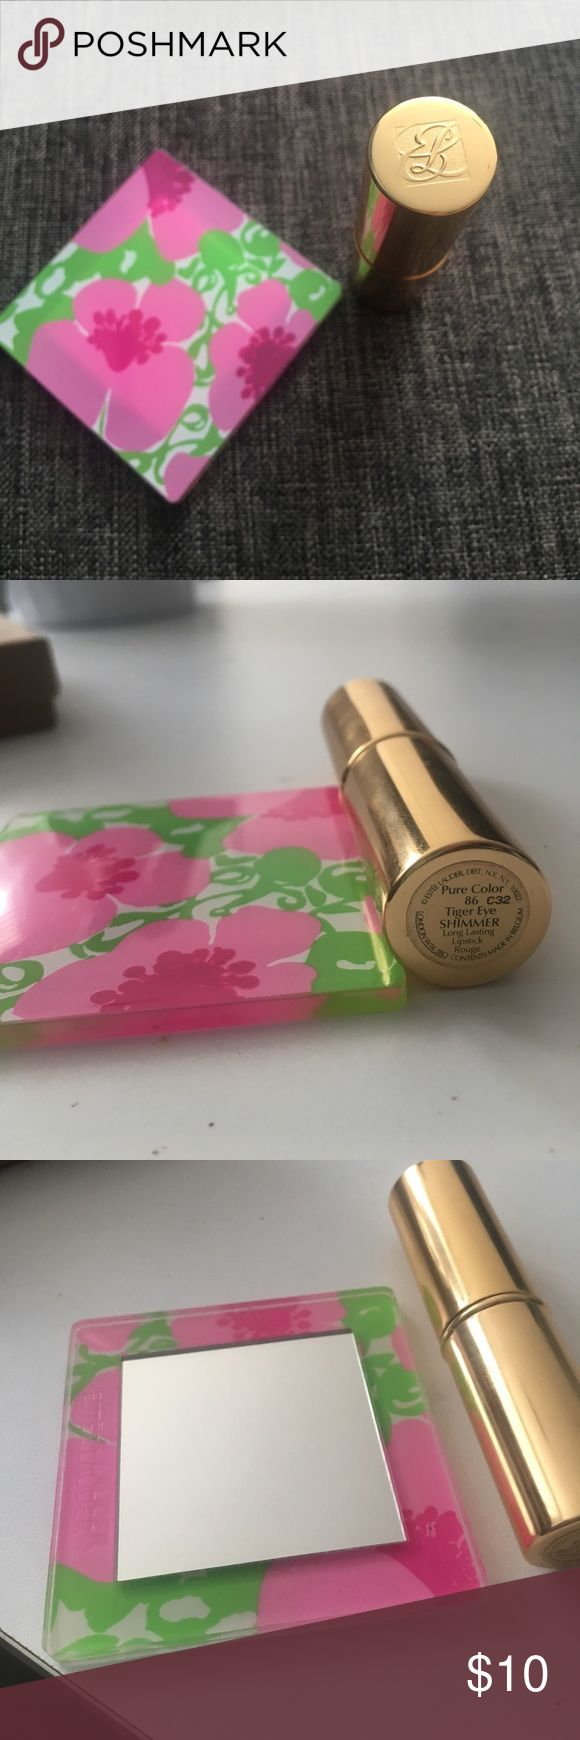 Estée Lauder pure color lipstick Pure color shimmer lipstick! Color name is Tiger Eye Shimmer- Gives your lips a shiny glow. Bought in the wrong color - have only tried it on once and it has been cleaned/disinfected 😊 Lilly Pulitzer style travel mirror included! Offers welcome😊 Estee Lauder Makeup Lipstick